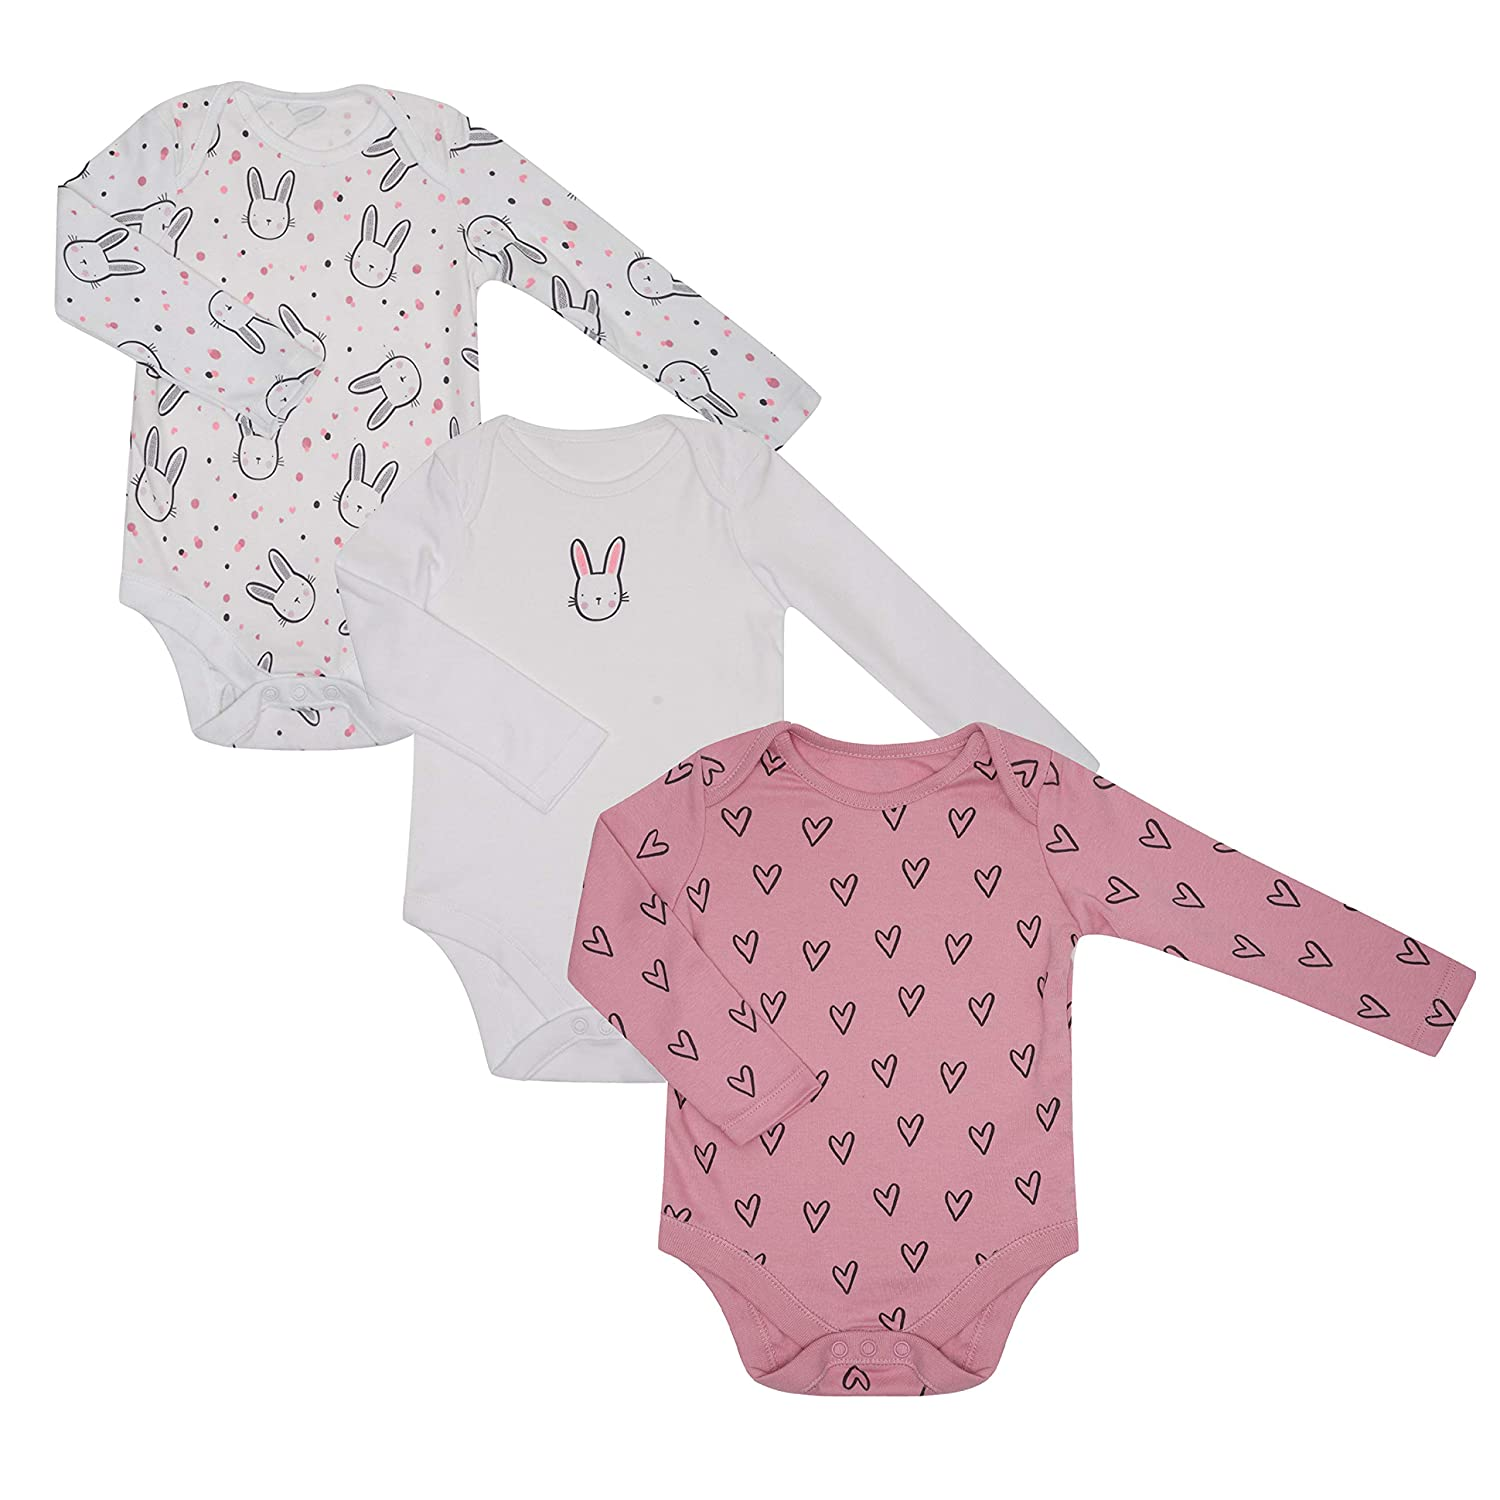 Baby Girls Ex Store Body Suits 3 Pack Body Vests Bunny Set Long Sleeved 100/% Cotton